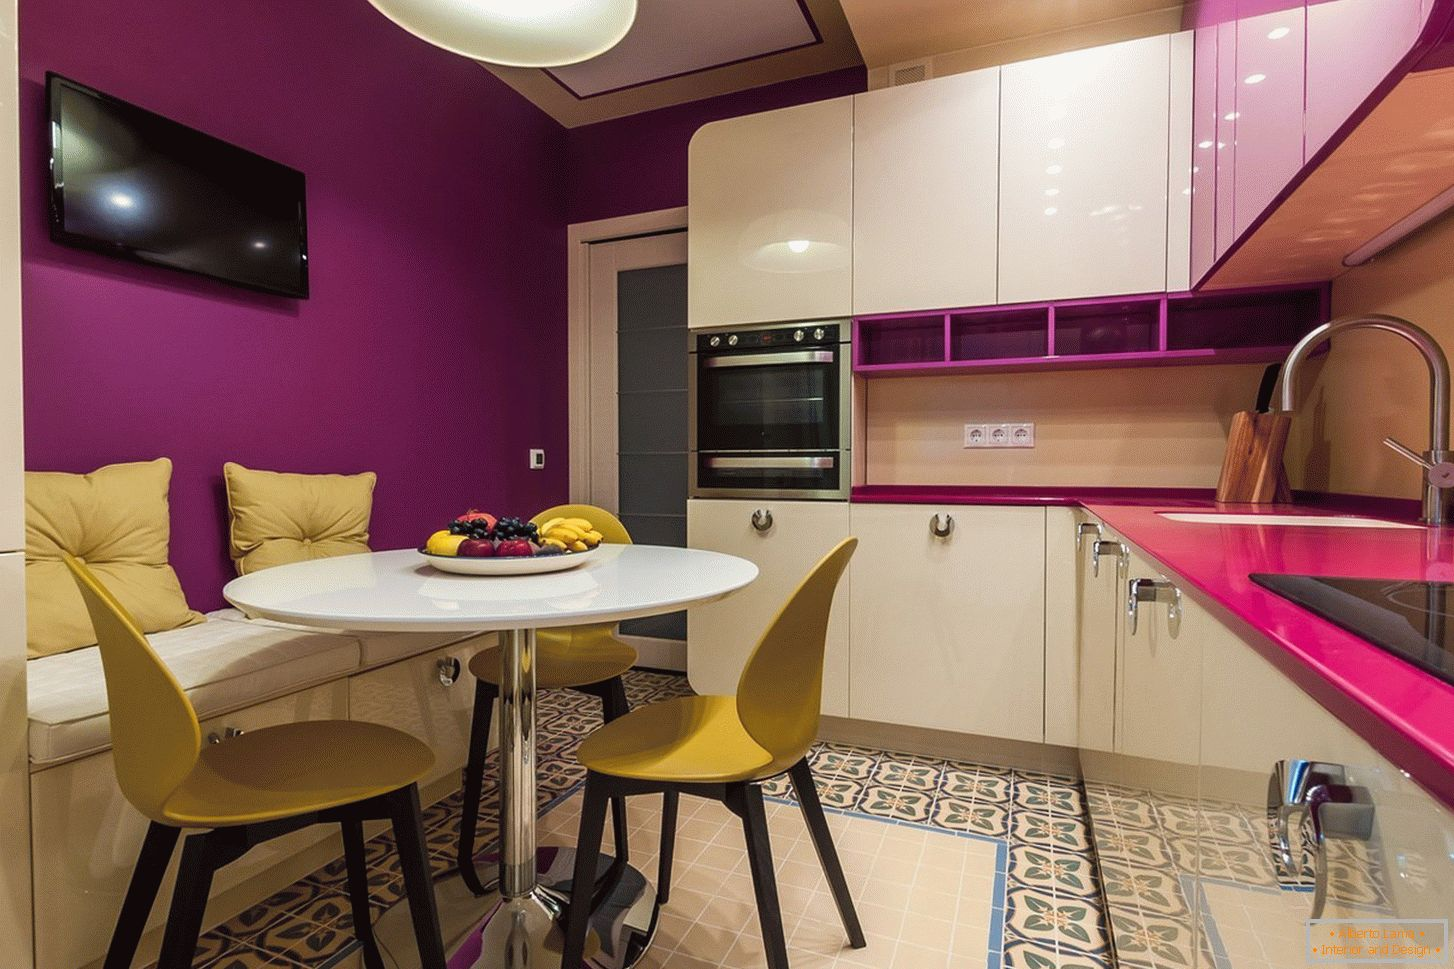 Purple wall in the kitchen